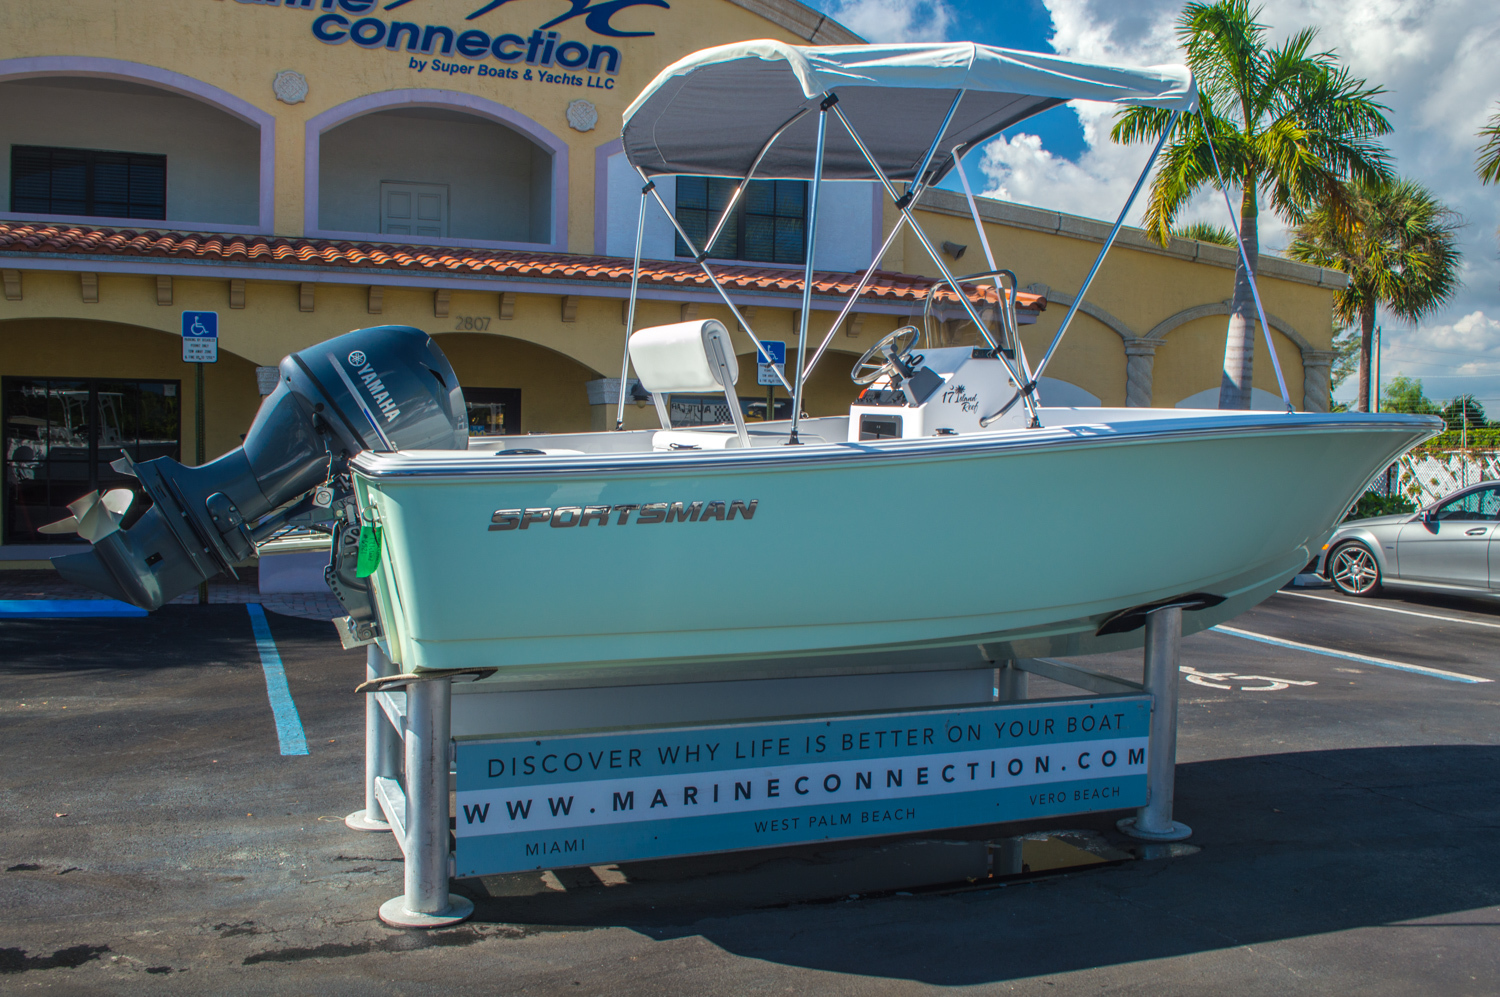 Thumbnail 7 for New 2016 Sportsman 17 Island Reef boat for sale in West Palm Beach, FL